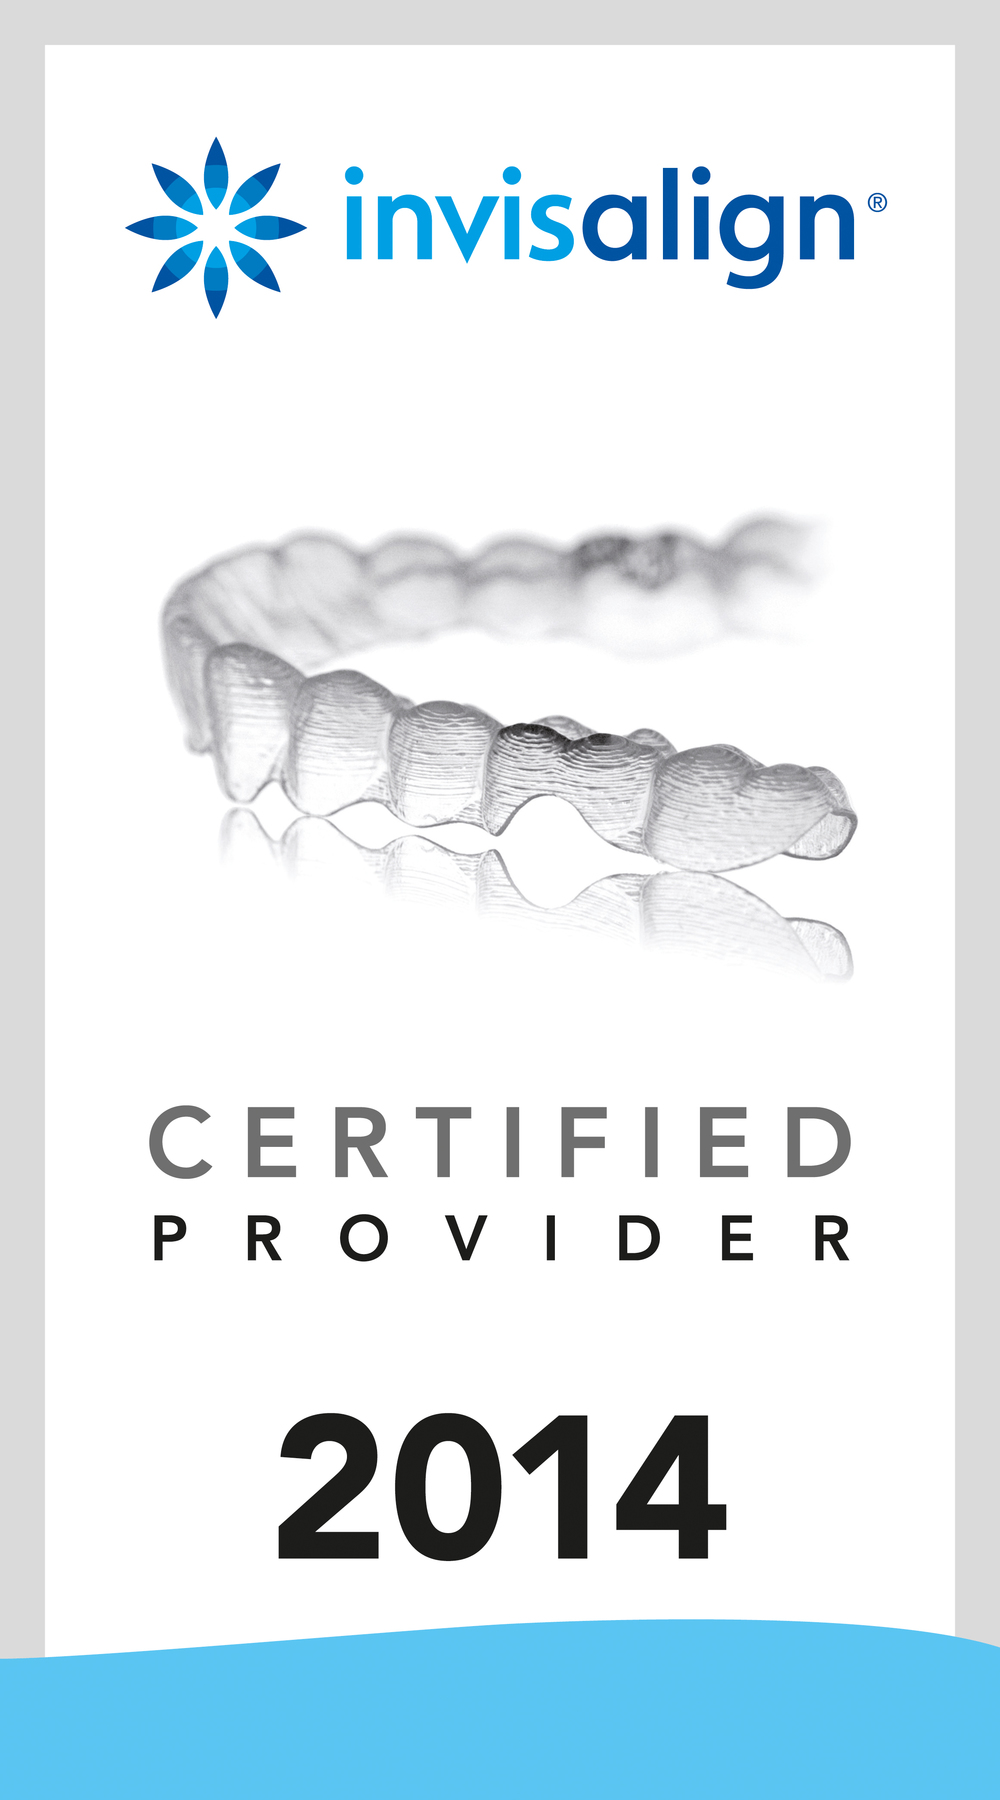 invisalign certified